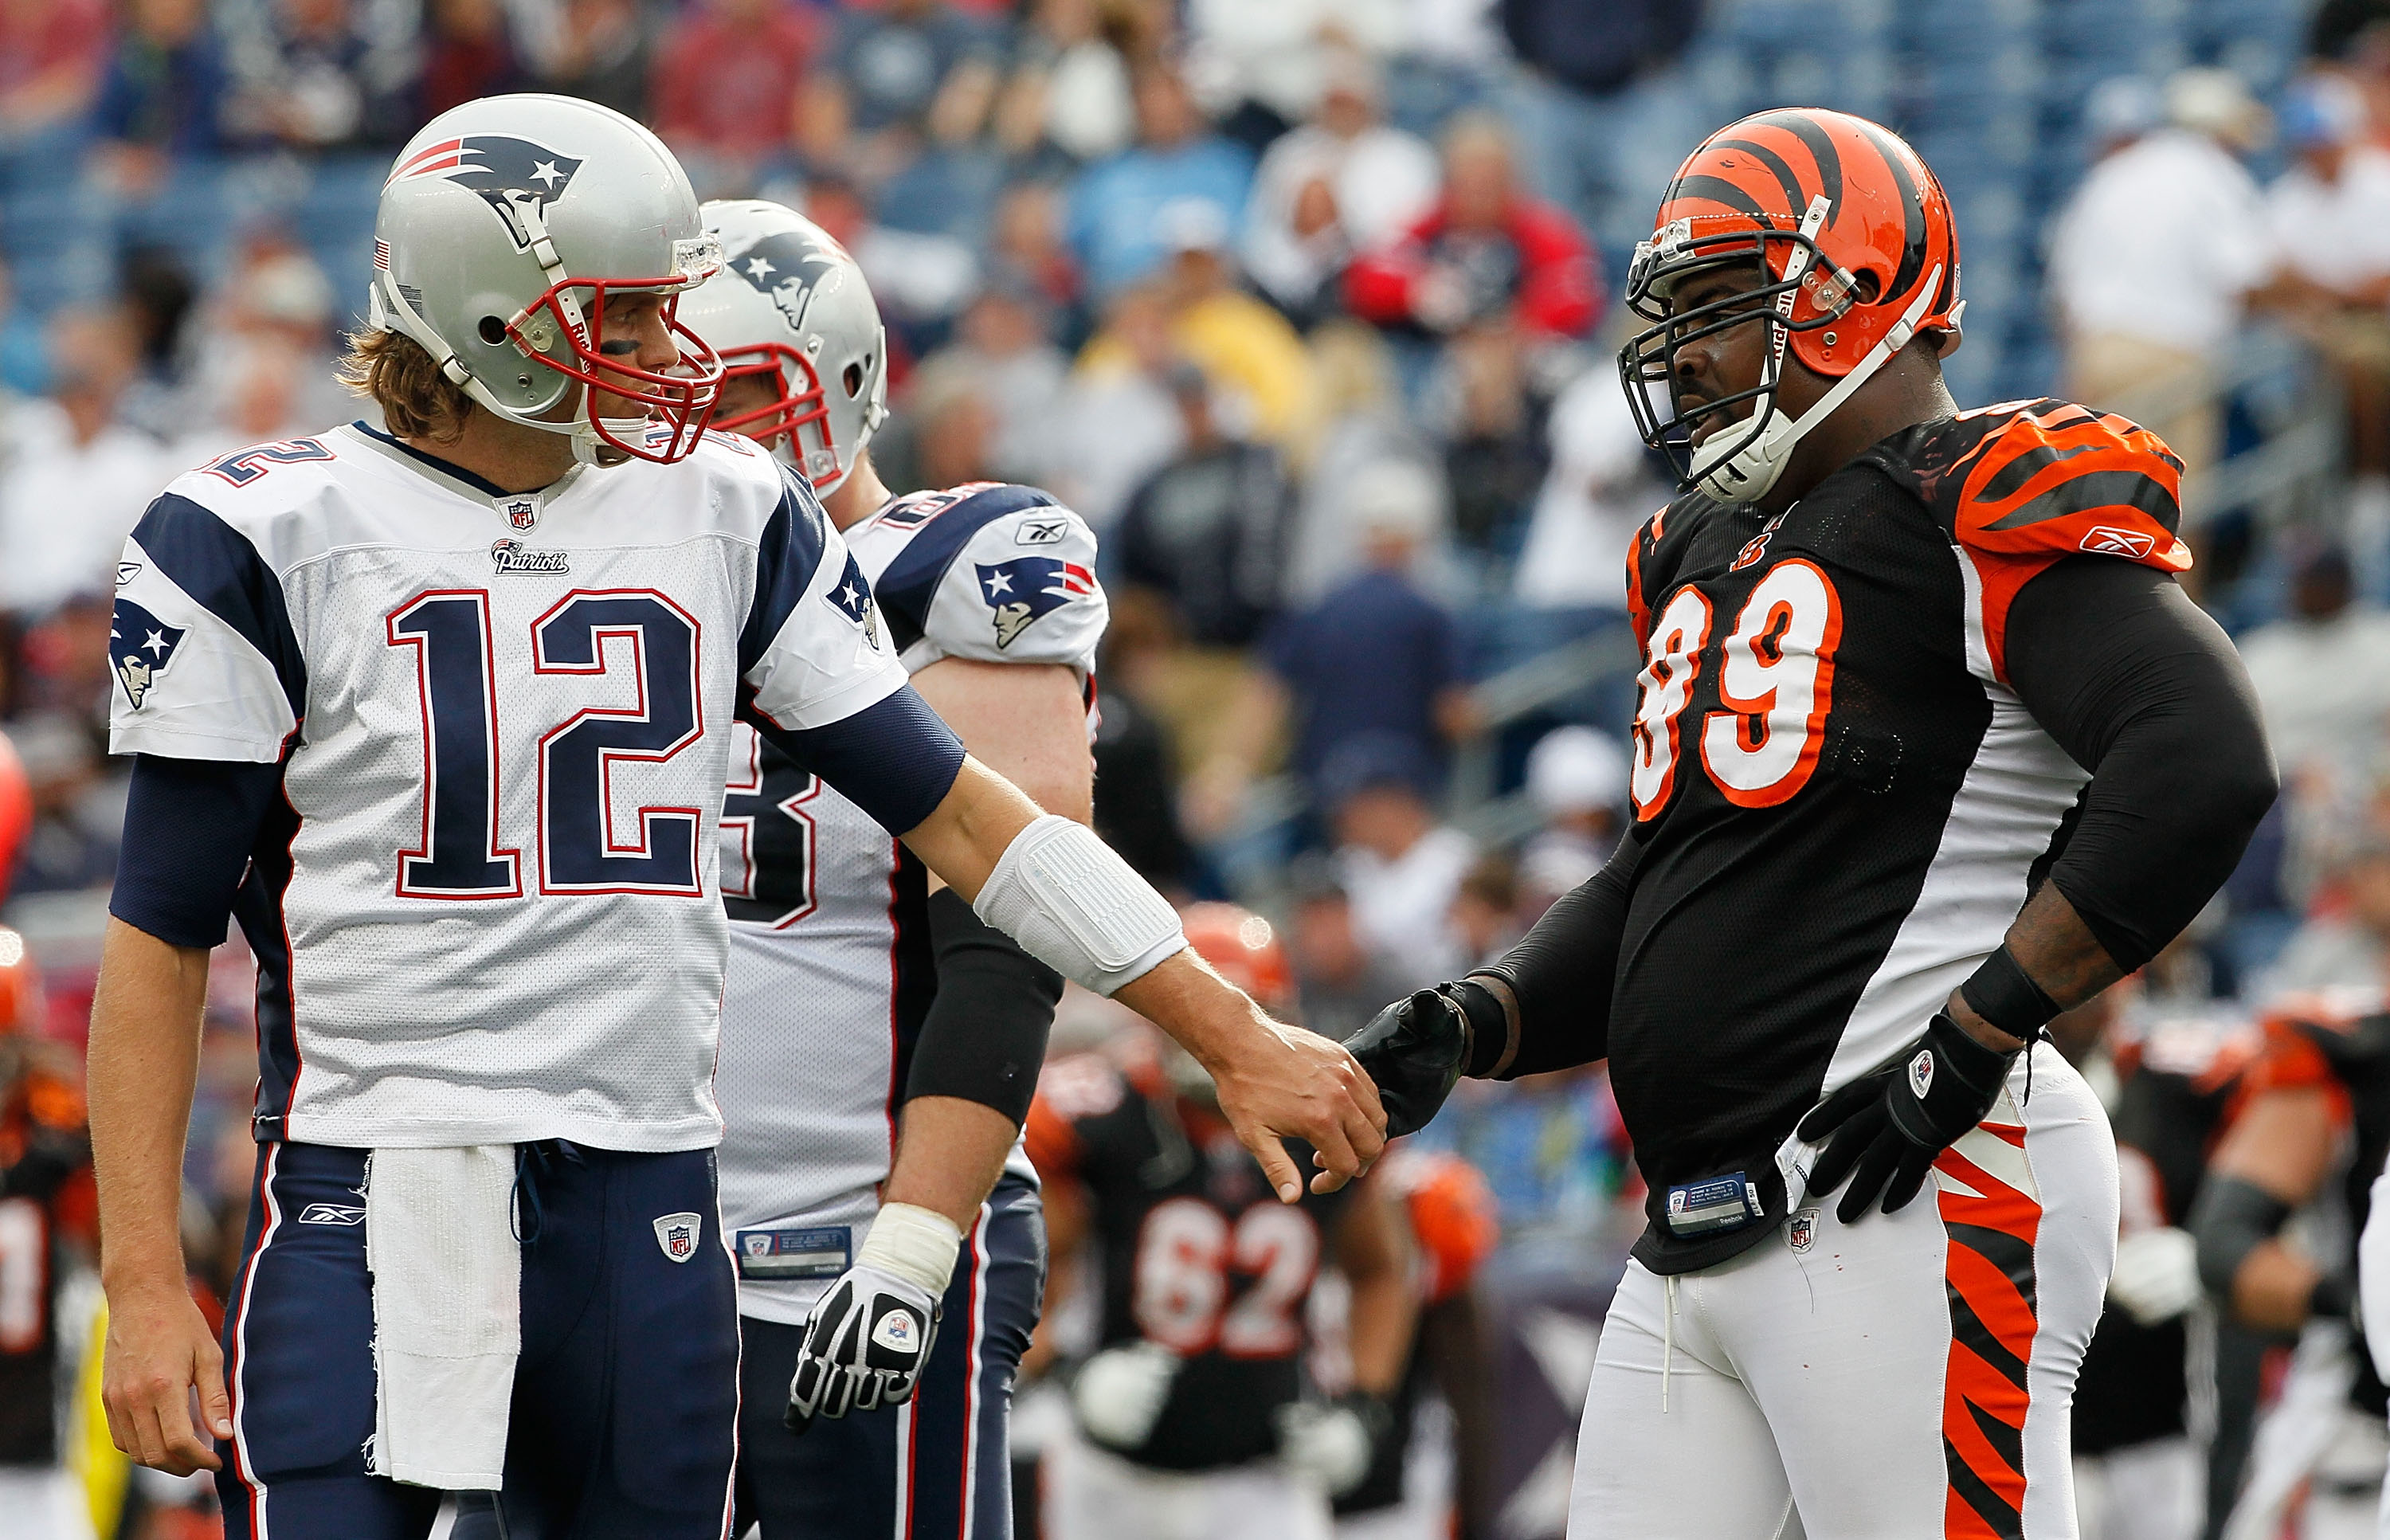 FOXBORO, MA - SEPTEMBER 12: Quarterbacks Tom Brady #12 of the New England Patriots shakes hands with Tank Johnson #99 of the Cincinnati Bengals during a the NFL season opener against the Cincinnati Bengals at Gillette Stadium on September 12, 2010 in Foxb